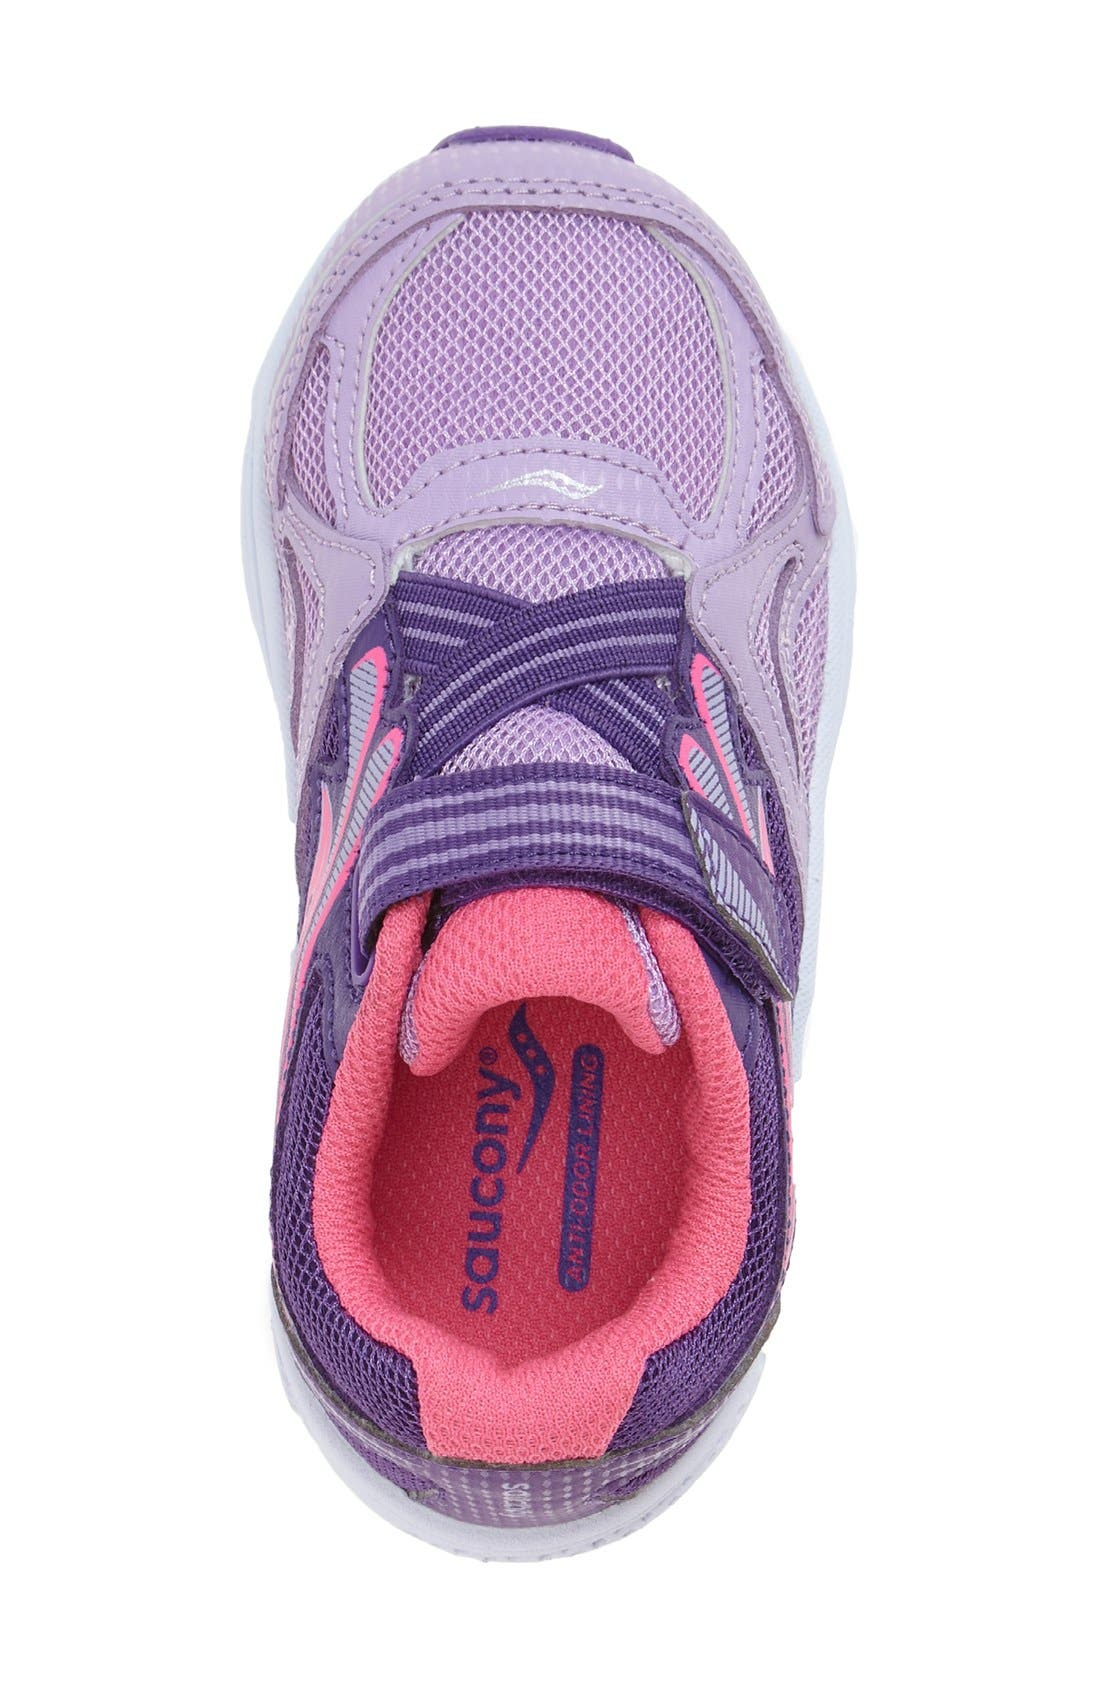 Baby Ride Sneaker,                             Alternate thumbnail 14, color,